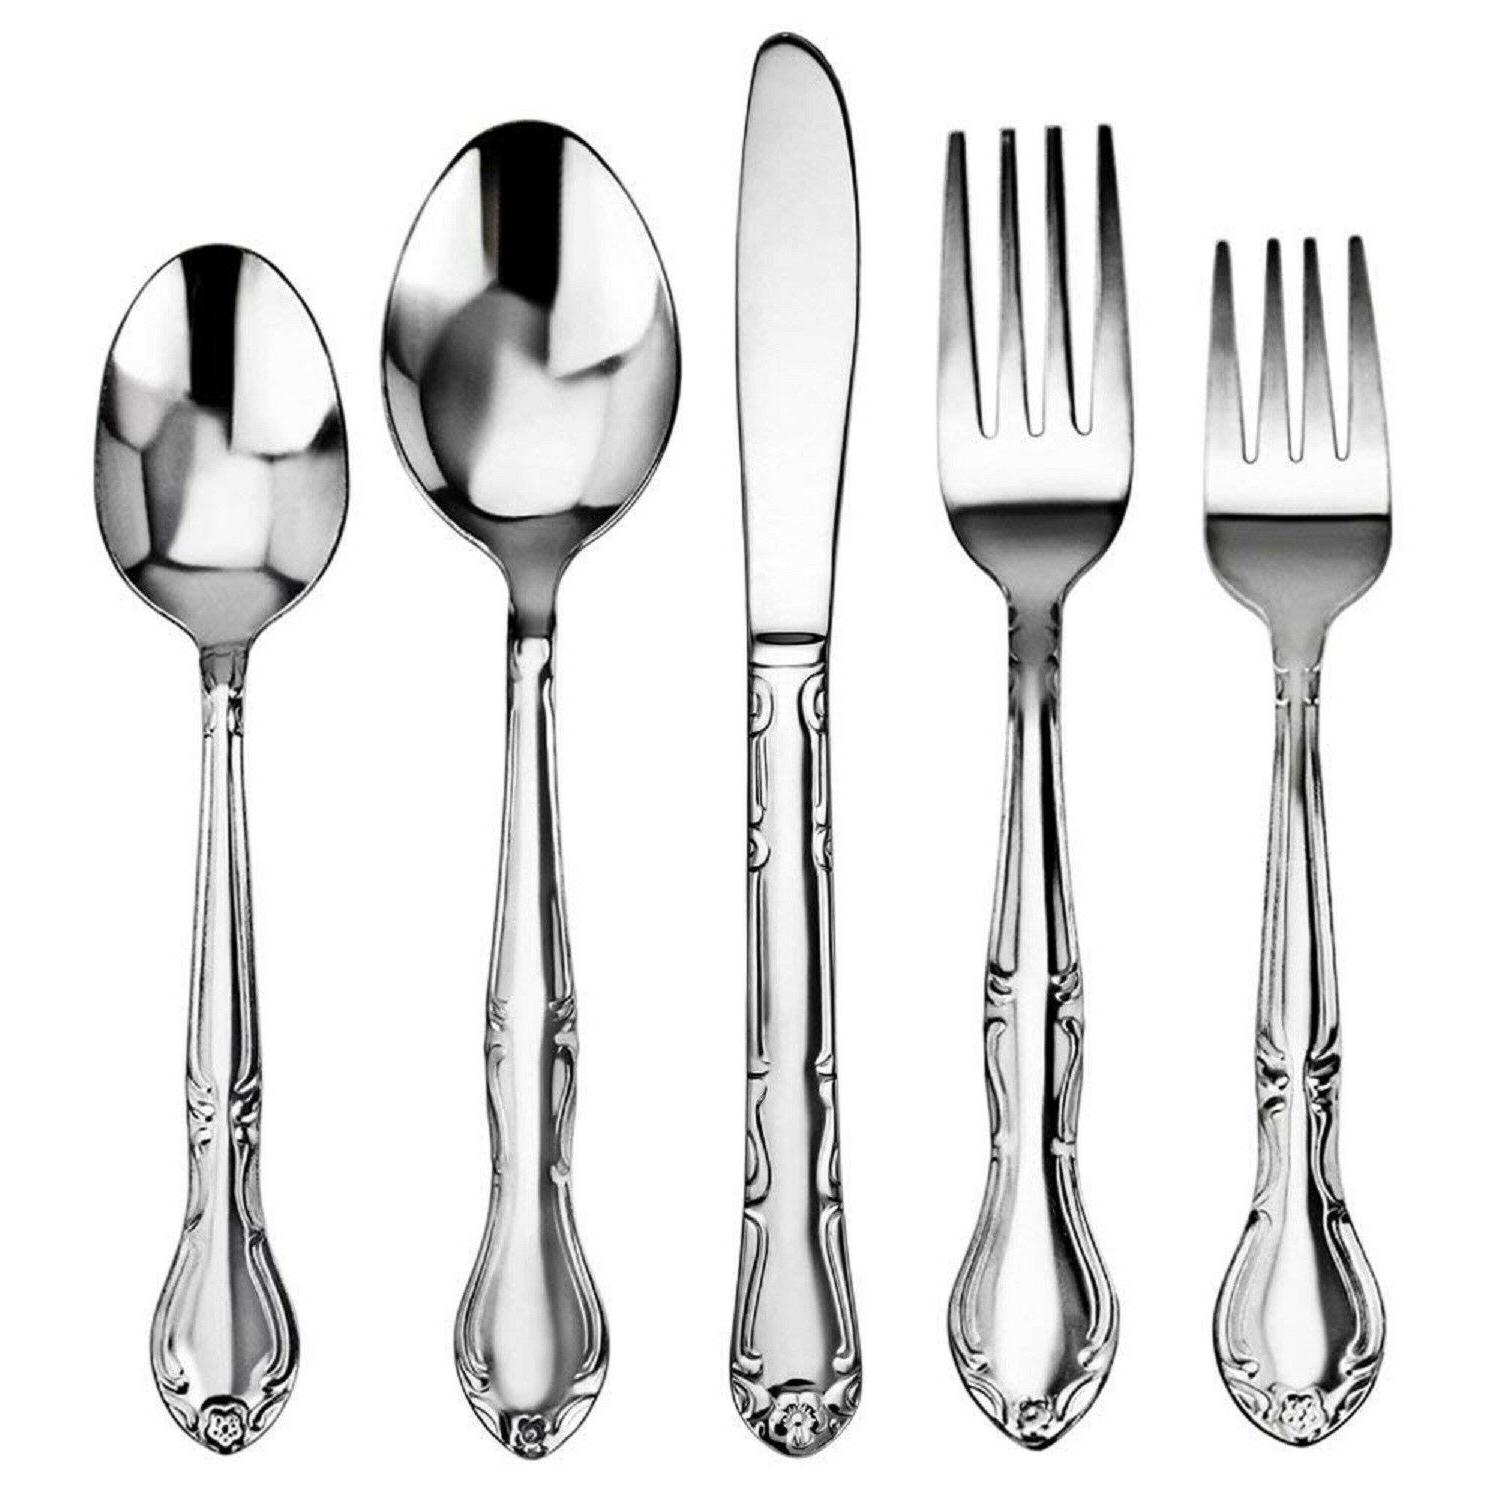 service for 12 5 flatware multi set